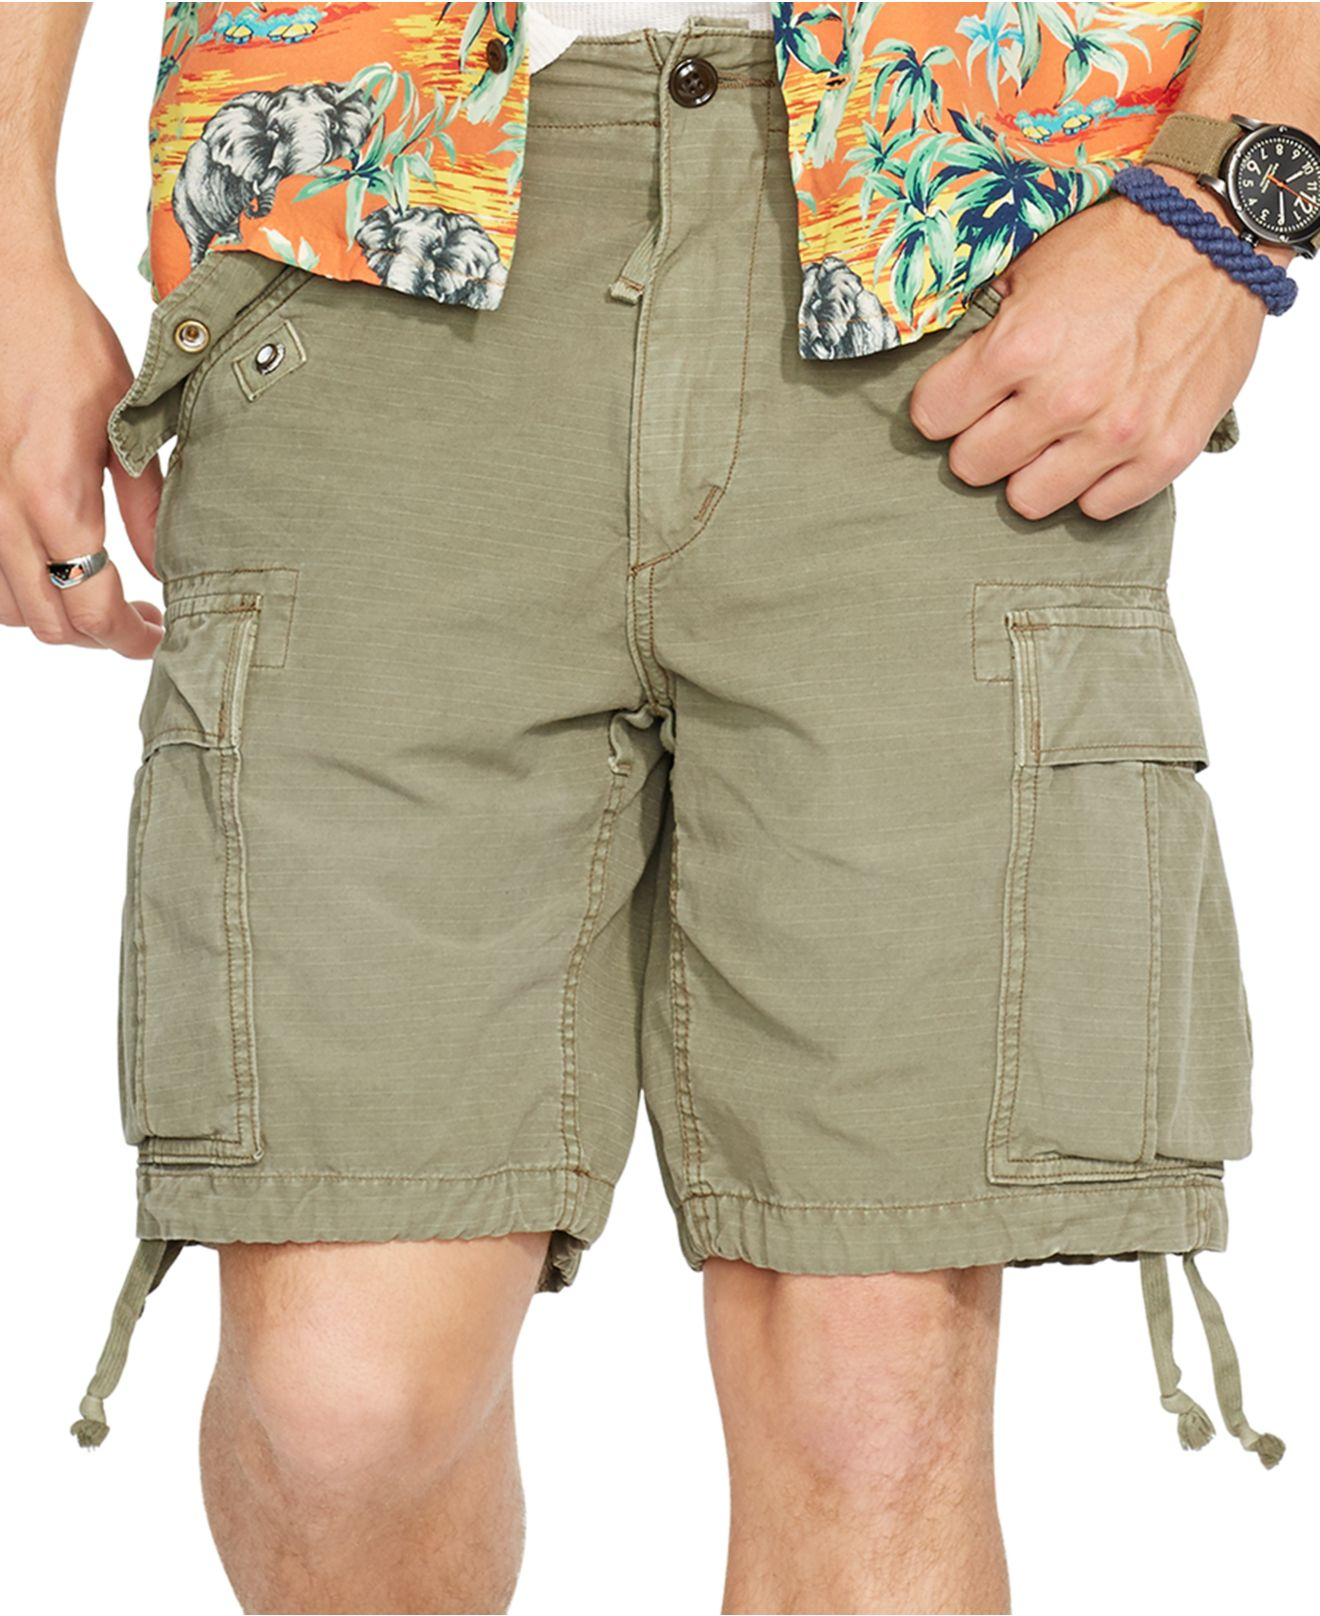 Men Polo Ralph Lauren BIG /& TALL CLASSIC FIT Green RIPSTOP Military Cargo Shorts